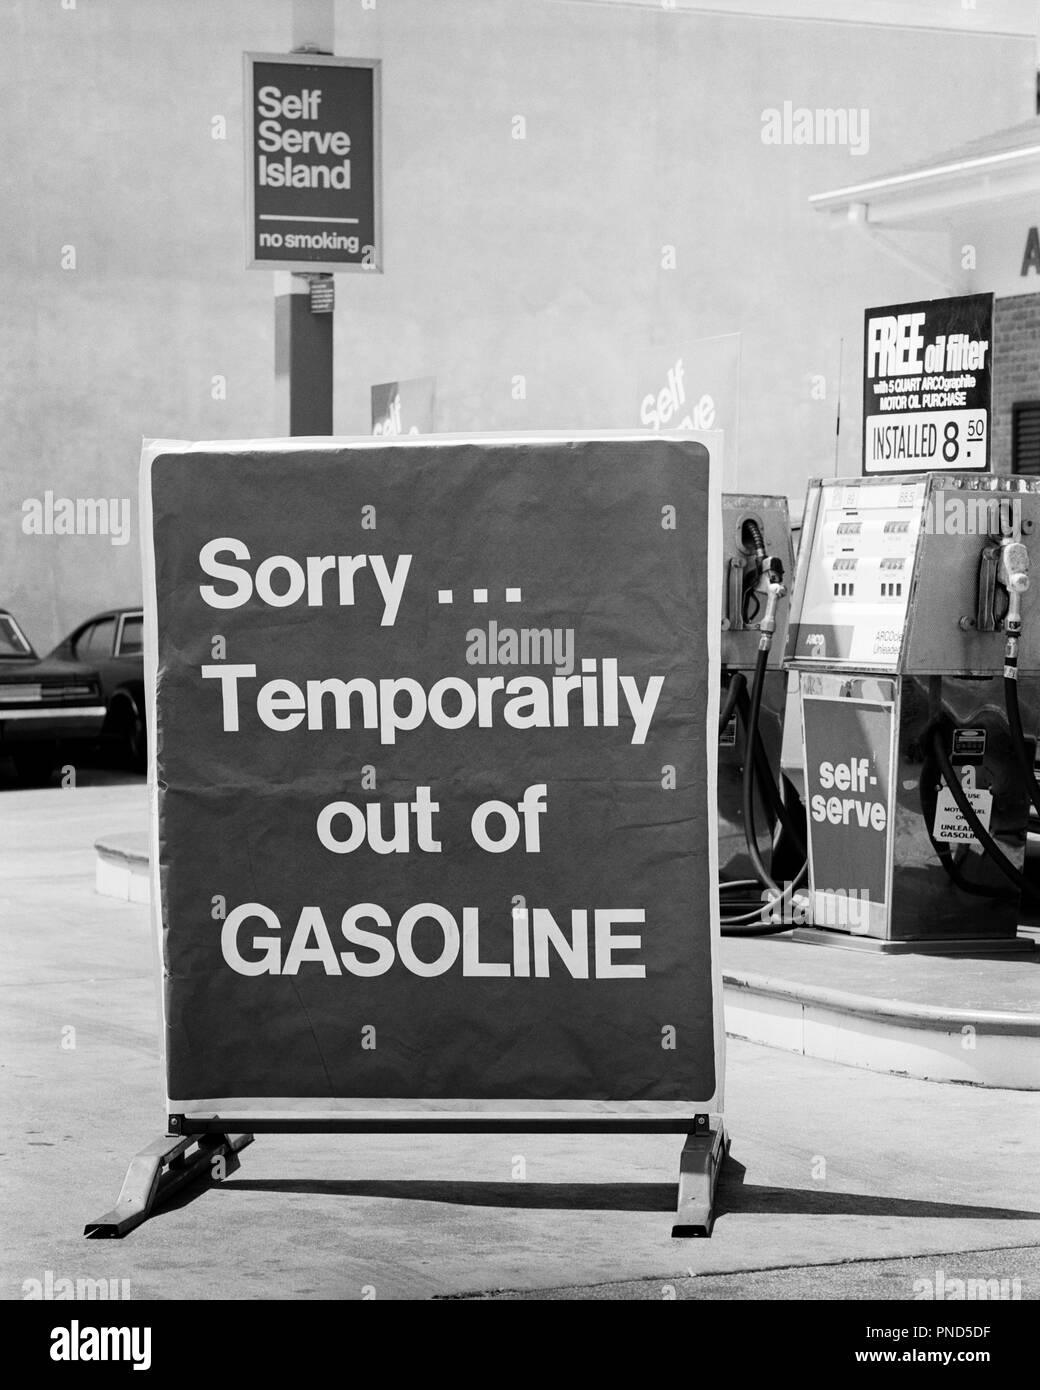 1970s CLOSE-UP SORRY TEMPORARILY OUT OF GASOLINE SIGN AT SELF SERVICE GAS STATION DURING 1973 OPEC OIL SHORTAGE CRISIS - m10294 HAR001 HARS AT OF FRUSTRATION POLITICS GASOLINE CONCEPTUAL STILL LIFE AUTOMOBILES CLOSE-UP VEHICLES 1973 EMBARGO SYMBOLIC TEMPORARILY DISAPPOINTMENT SELF SERVICE BLACK AND WHITE DURING HAR001 OLD FASHIONED REPRESENTATION - Stock Image